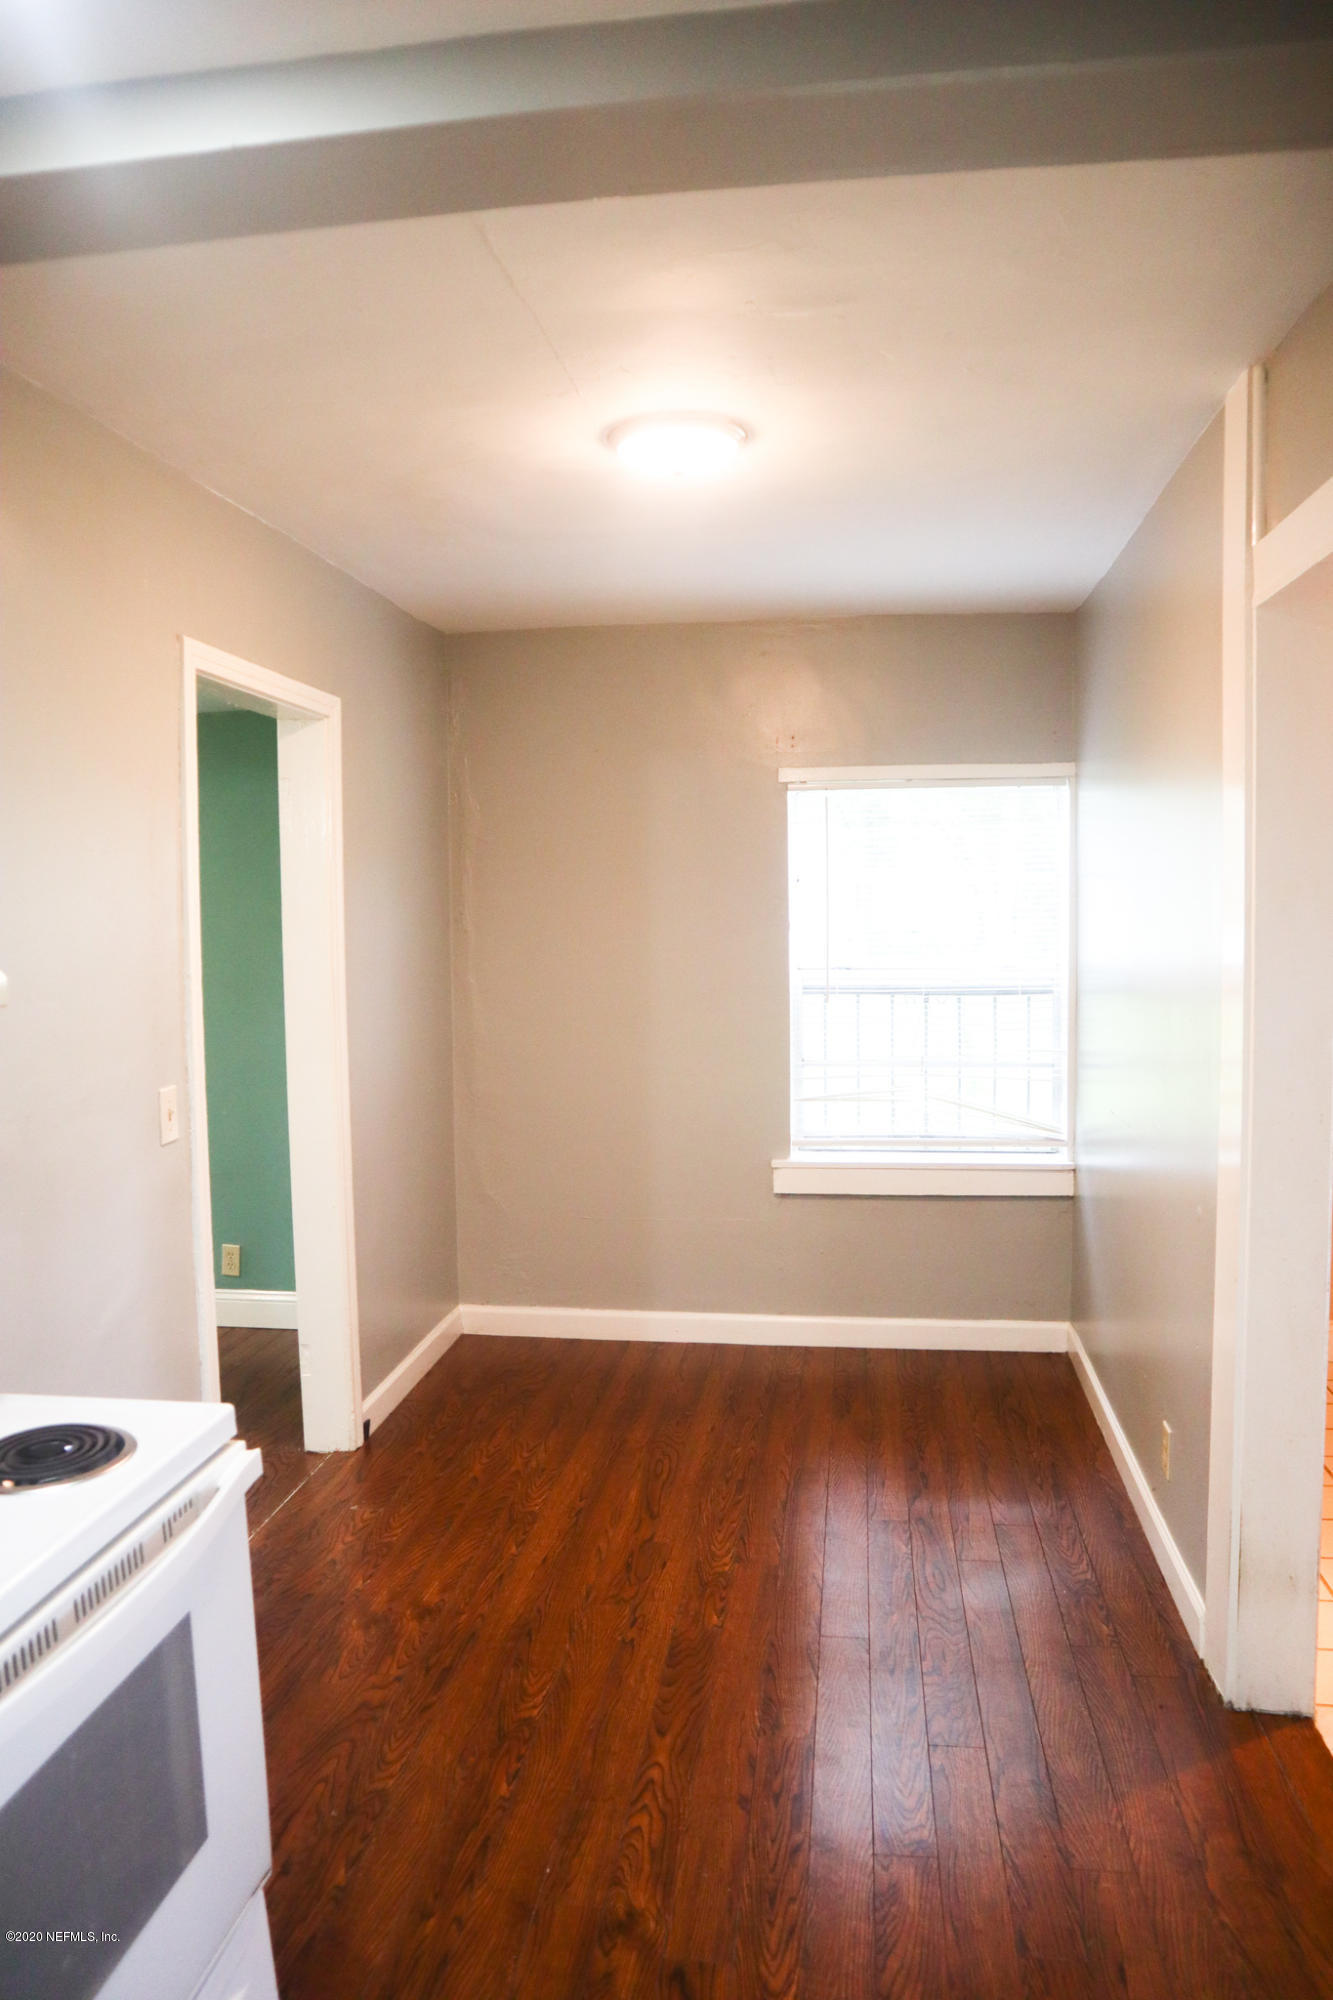 1458 ROYAL COURT, JACKSONVILLE, FLORIDA 32209, 2 Bedrooms Bedrooms, ,1 BathroomBathrooms,Residential,For sale,ROYAL COURT,1080955